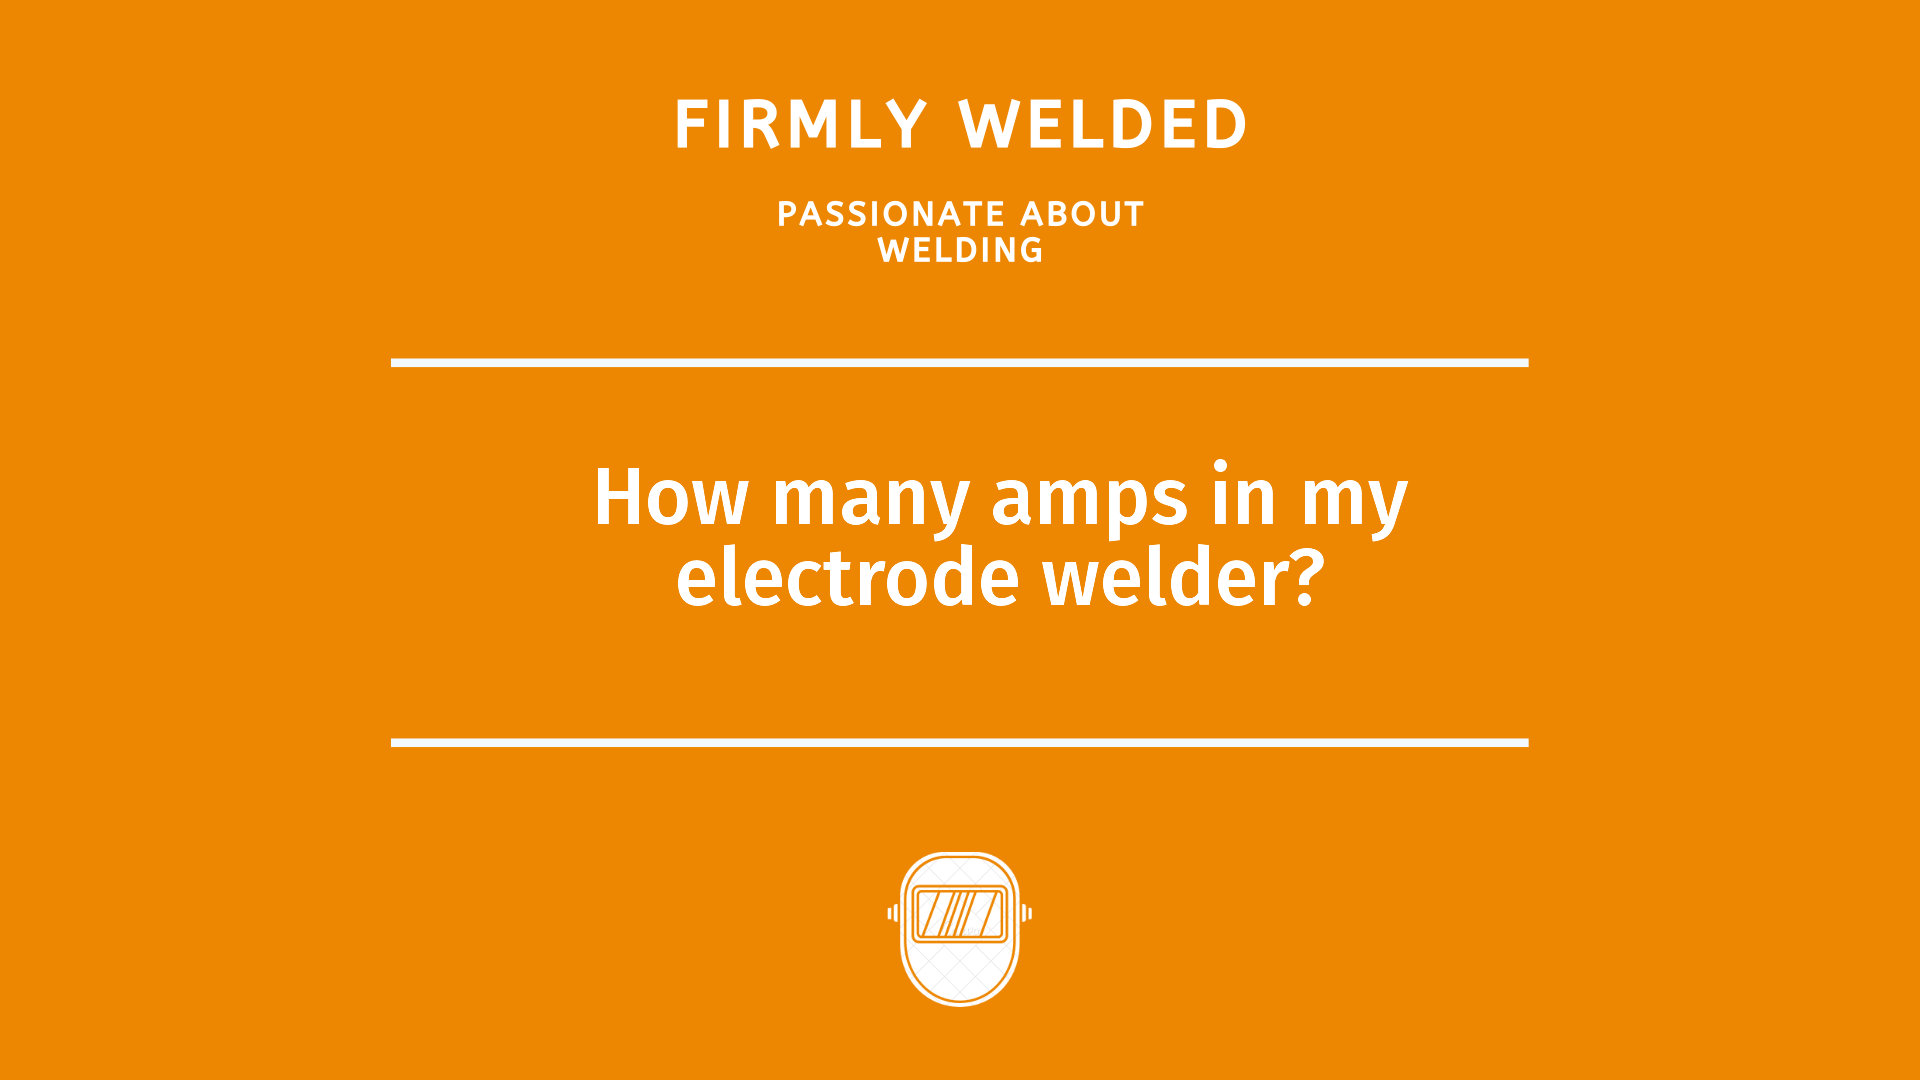 How many amps in my electrode welder?